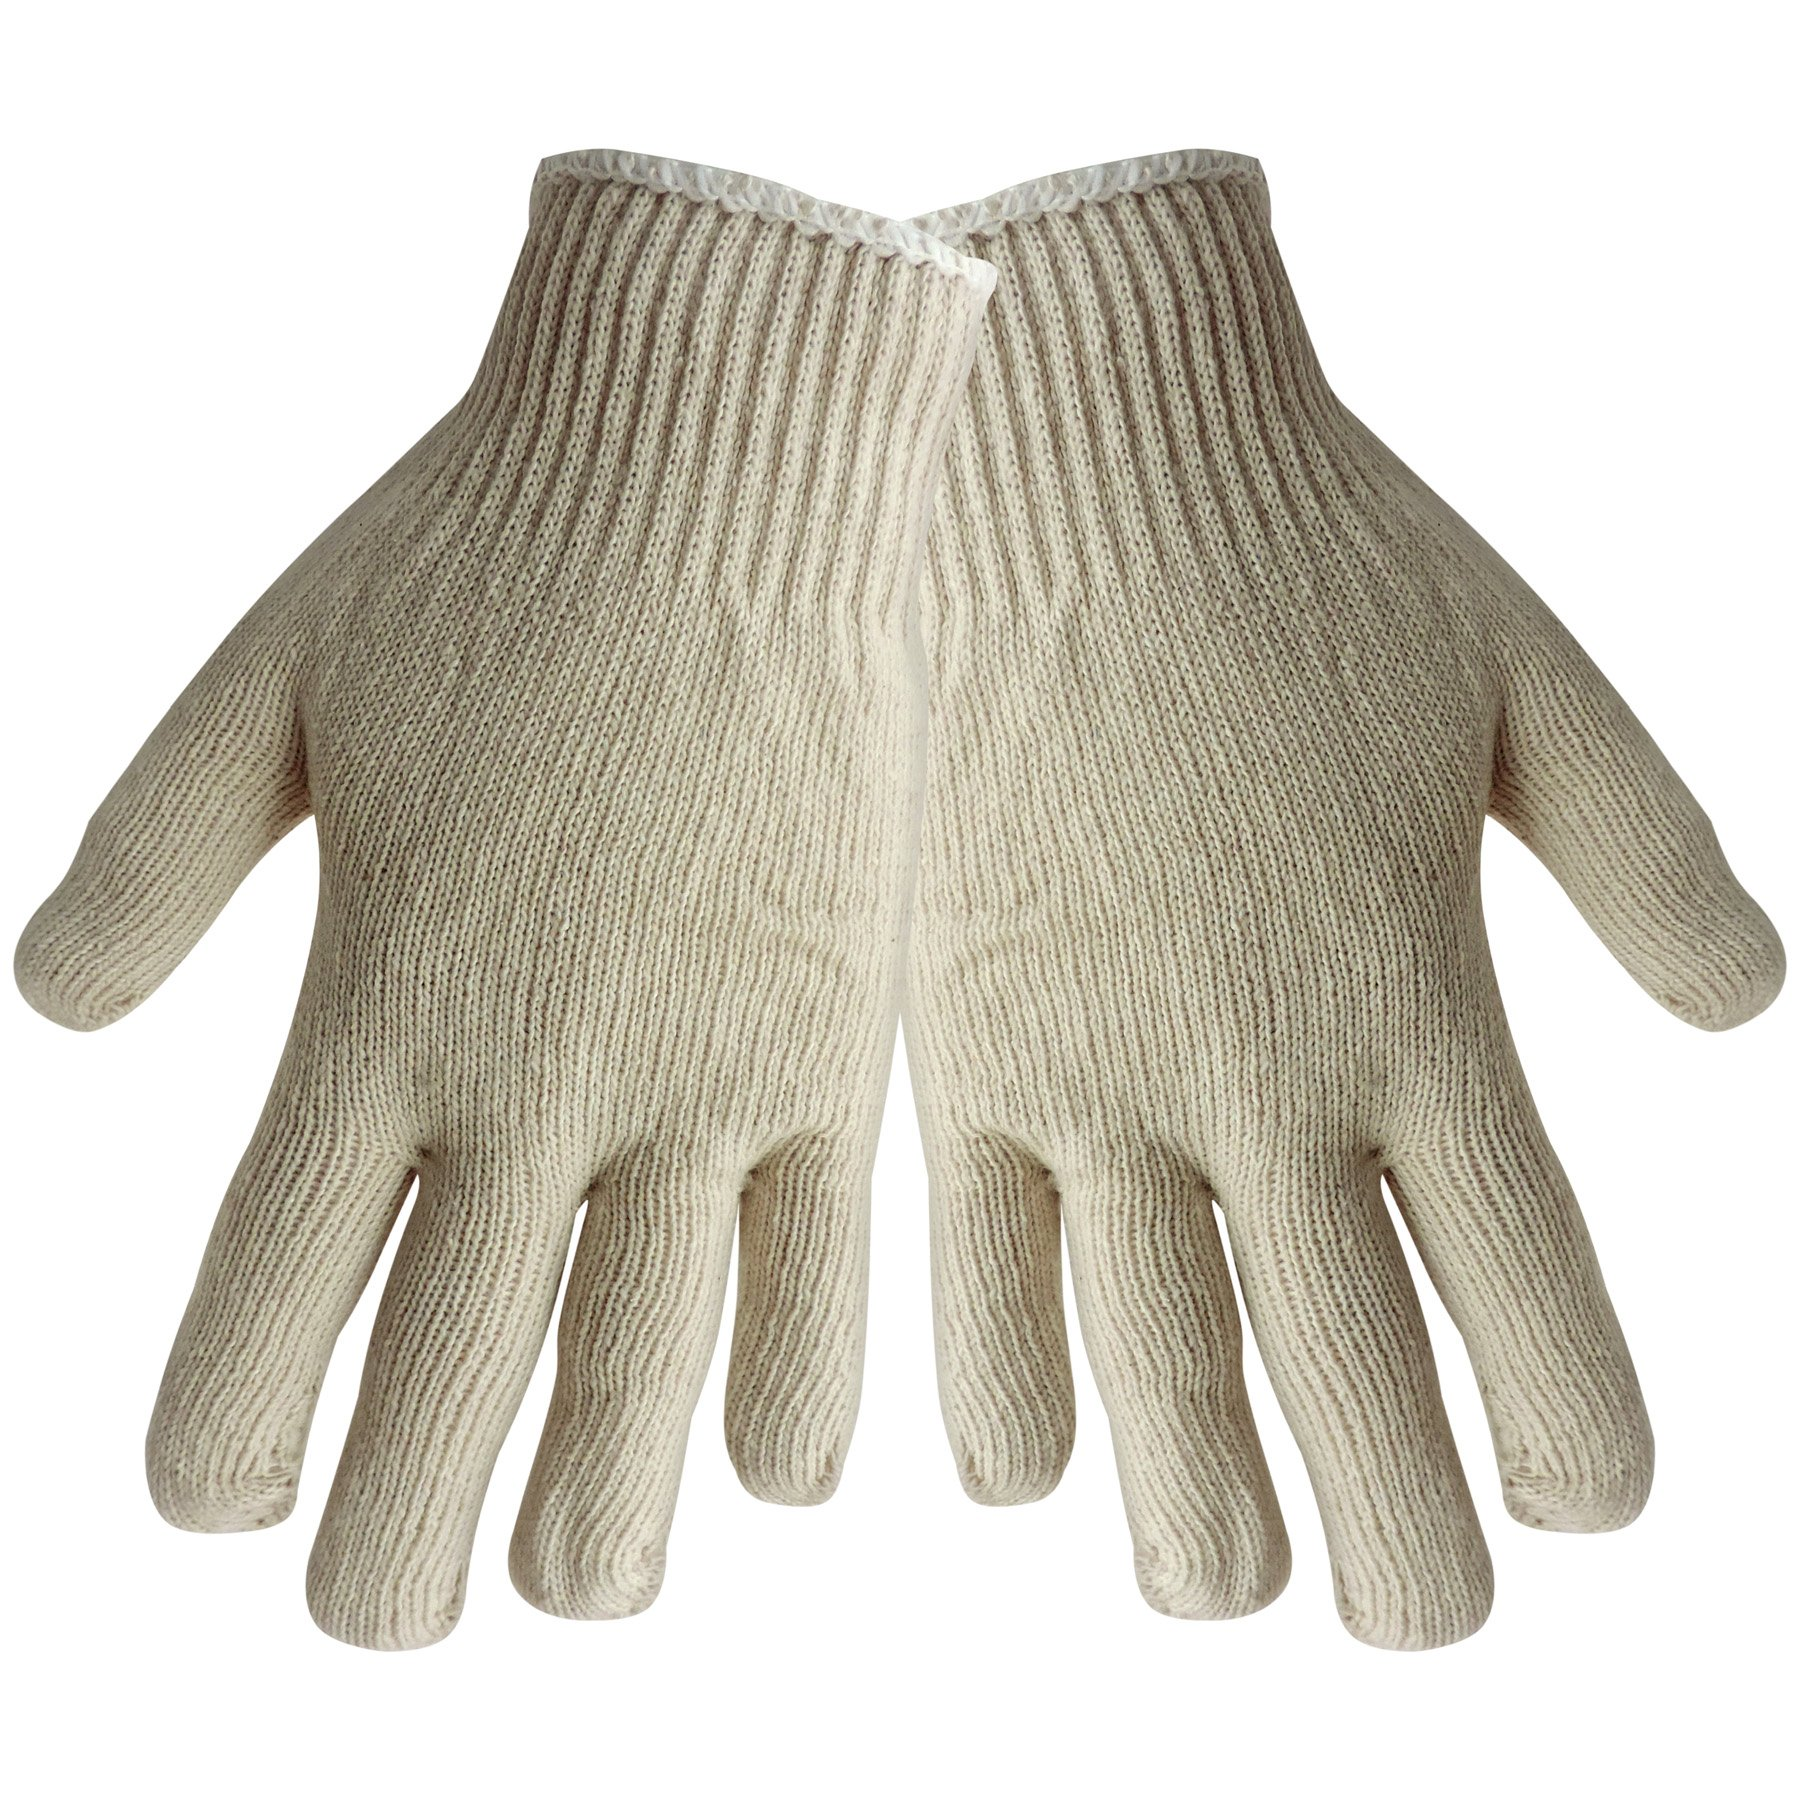 Global Glove S400 Economy Weight String Knit Glove, Work, Womens, Gray (Case of 300) by Global Glove